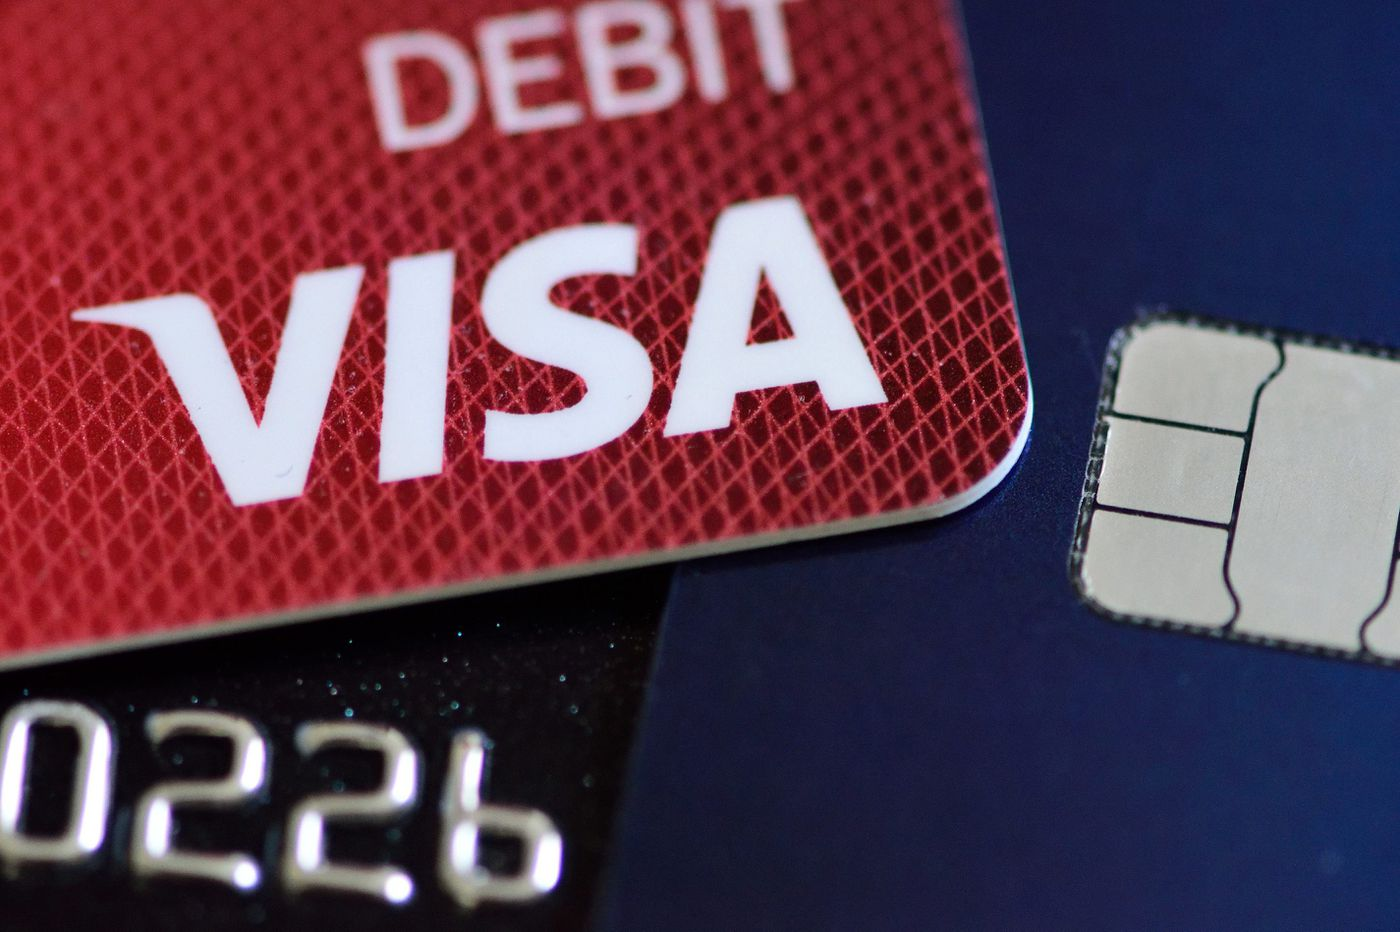 Why merchants still require signatures for credit card buys when it's not needed